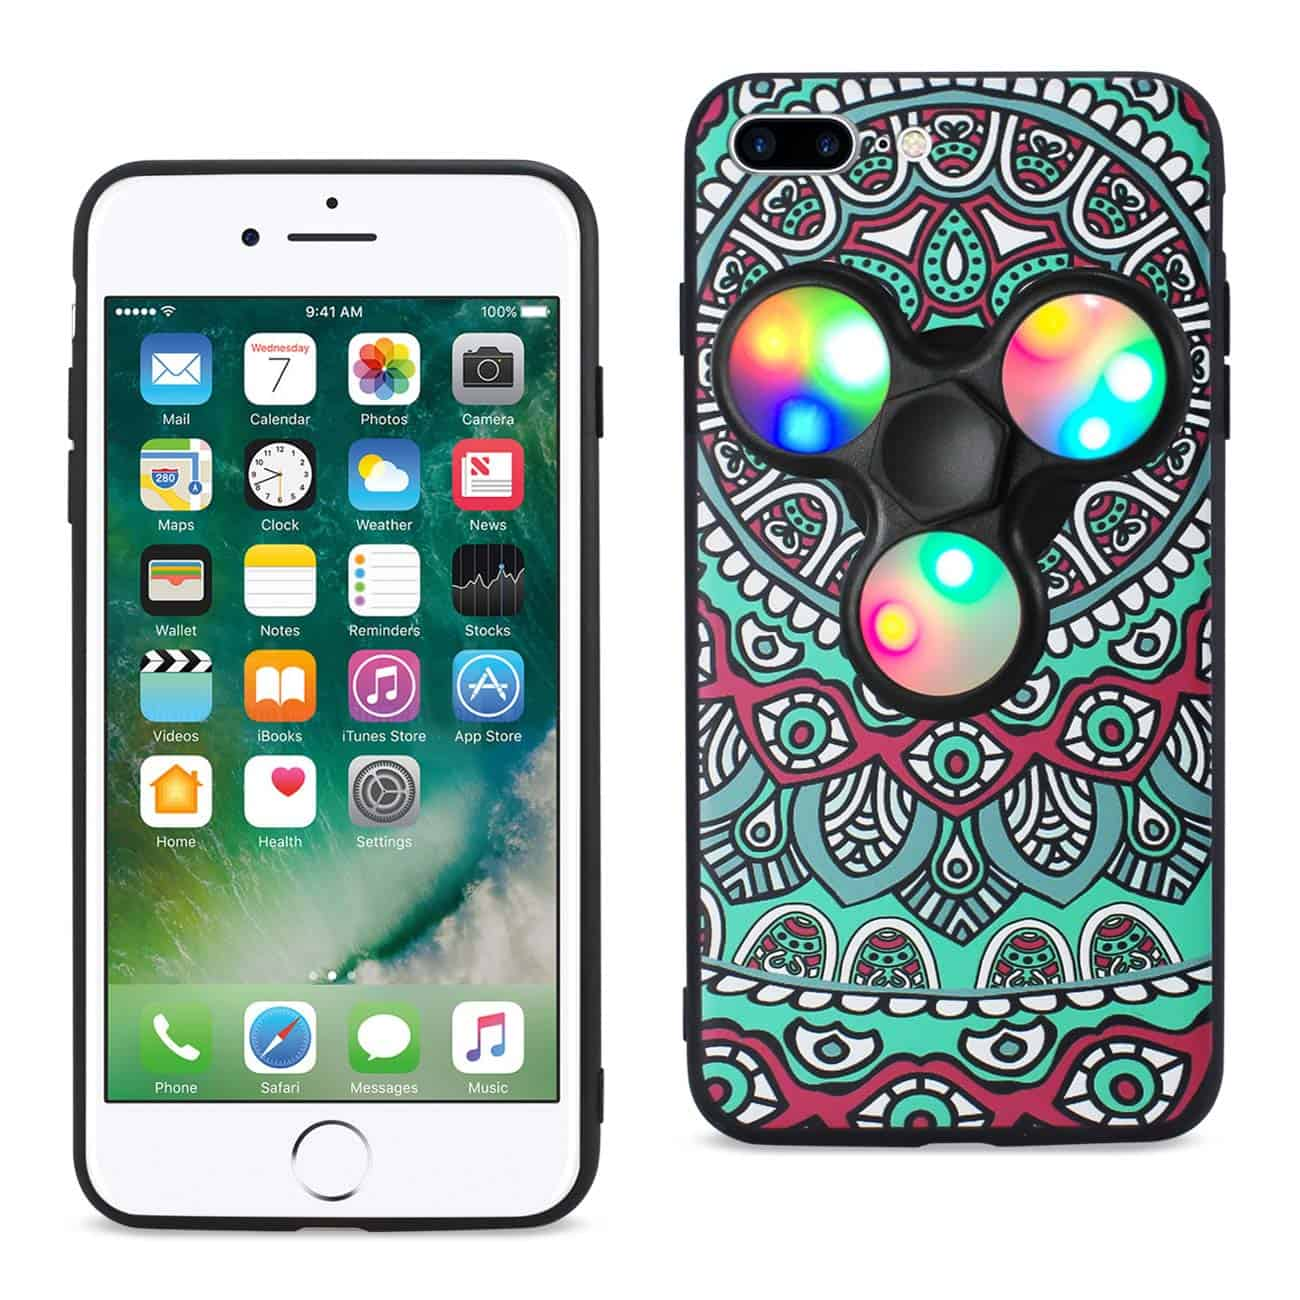 DESIGN THE INSPIRATION OF PEACOCK IPHONE 7 PLUS/ 6 PLUS/ 6S PLUS CASE WITH LED FIDGET SPINNER CLIP ON IN TEAL